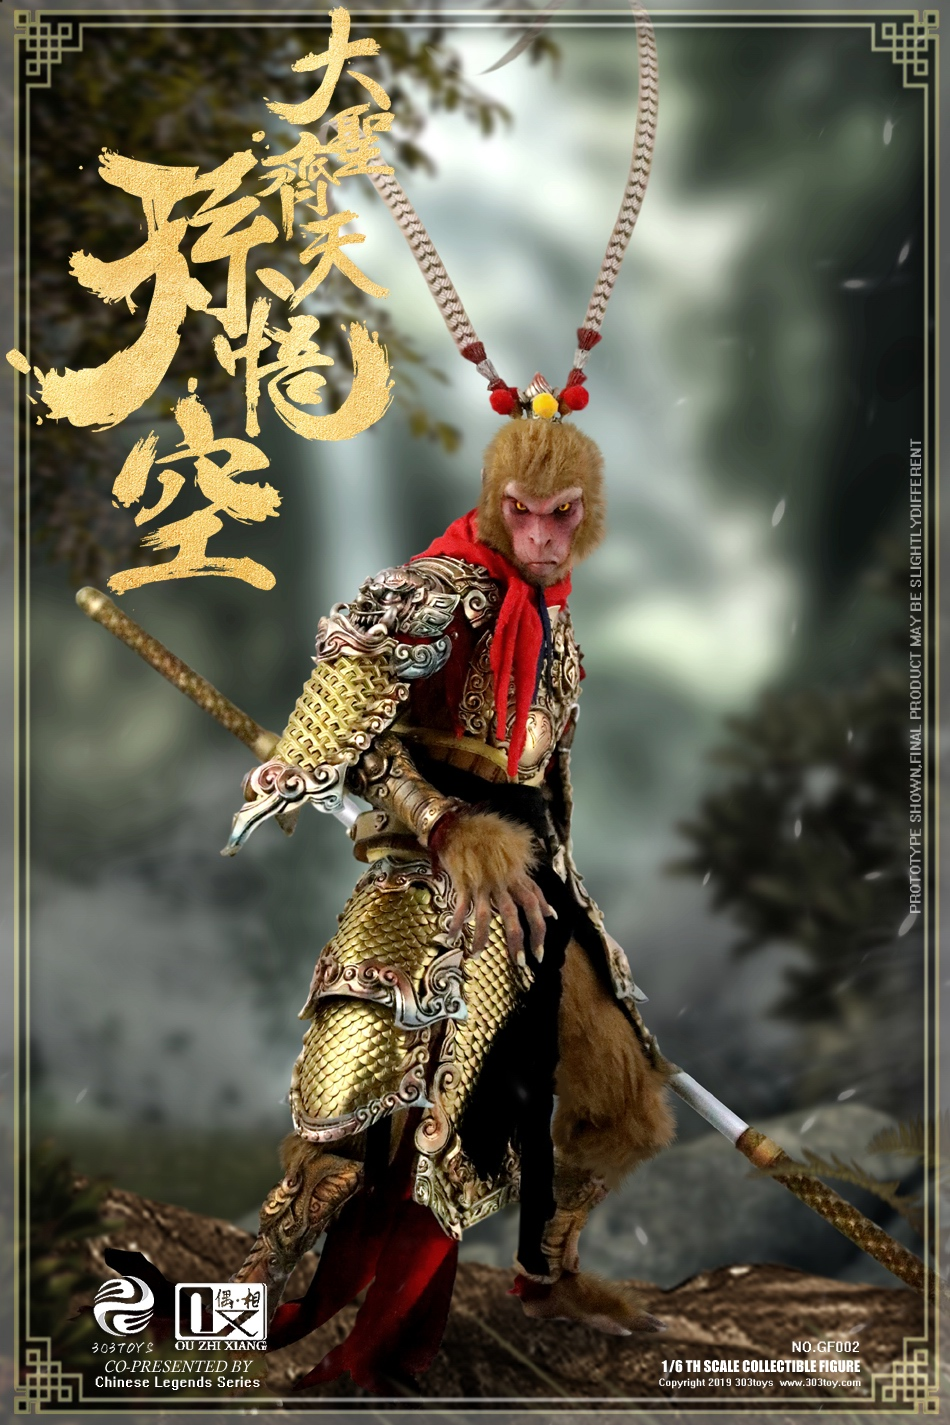 EveningPhase - NEW PRODUCT: 303TOYS x Evening phase: 1/6 National Wind Legend Series - Sun Wukong Monkey King Apocalypse & Dasheng Qitian & Stepping 18090910